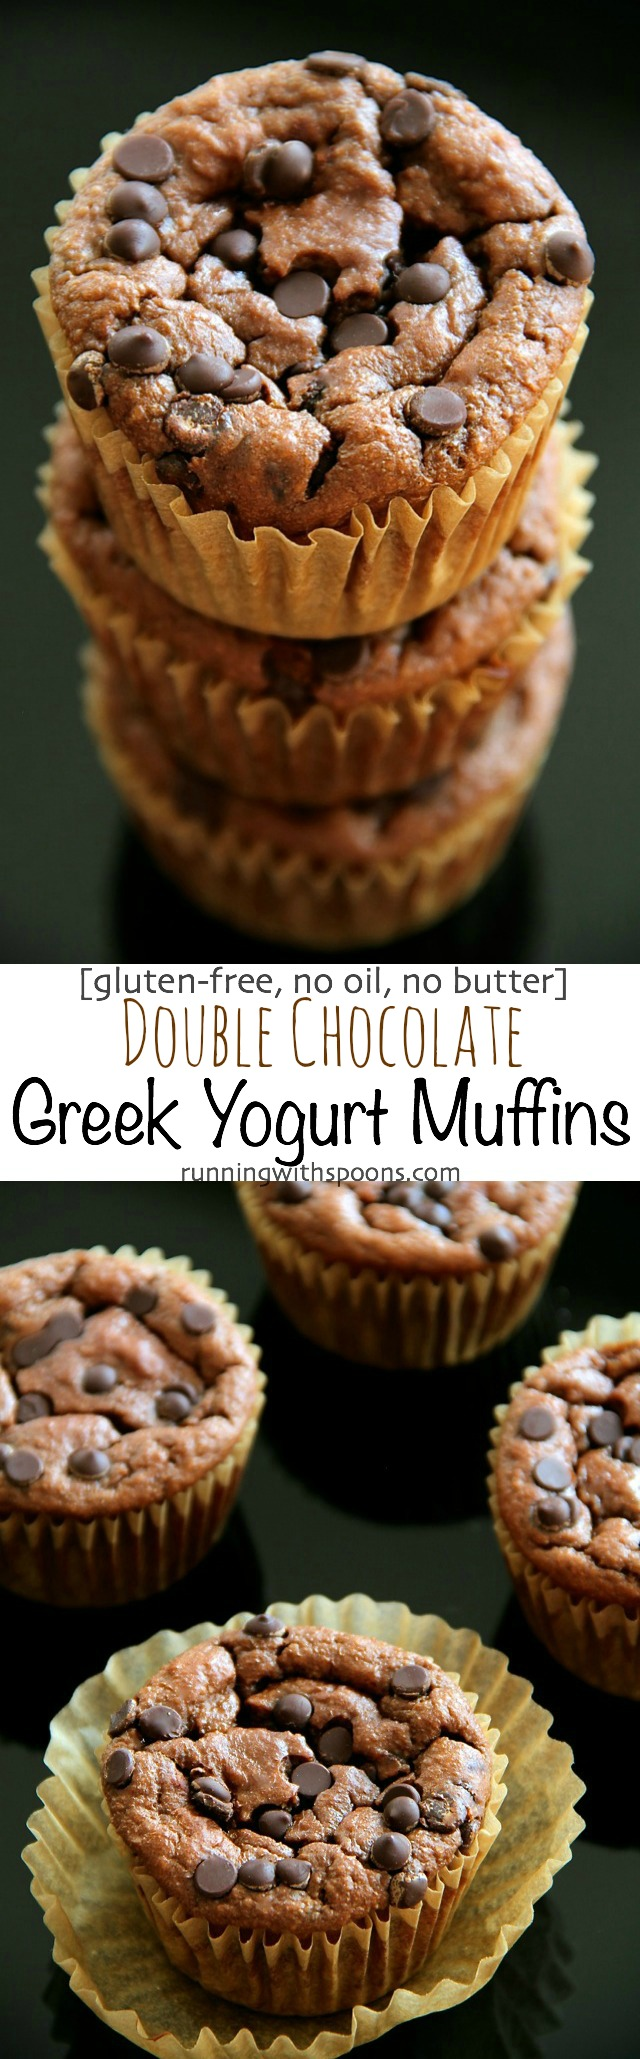 Double Chocolate Greek Yogurt Muffins -- you'd never believe that these soft and tender muffins are made with NO flour, butter, or oil! | runningwithspoons.com #recipe #healthy